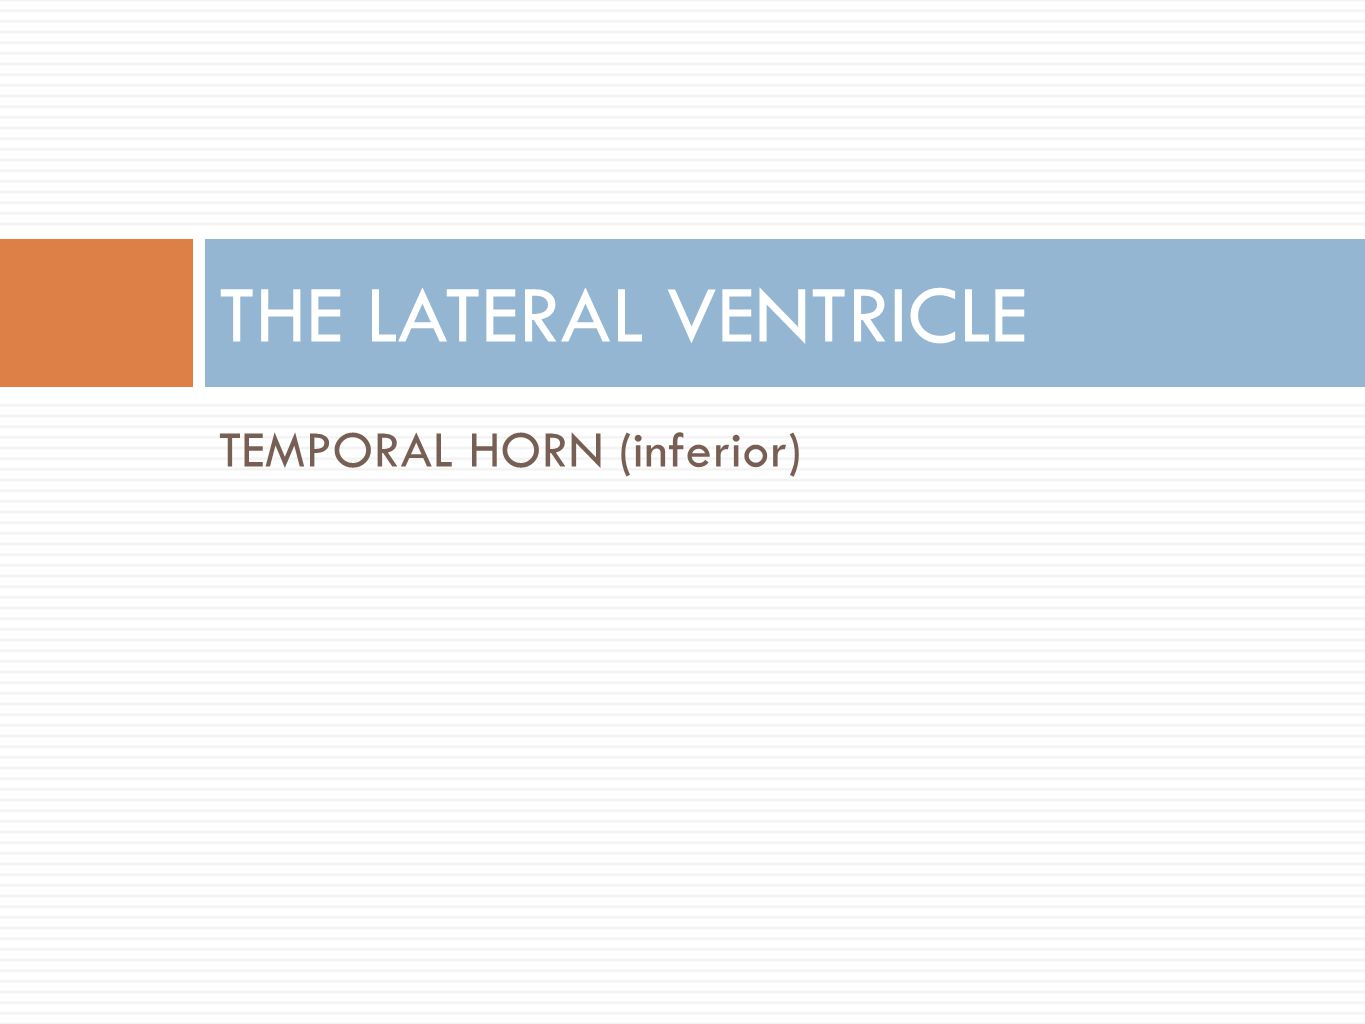 THE LATERAL VENTRICLE TEMPORAL HORN (inferior)